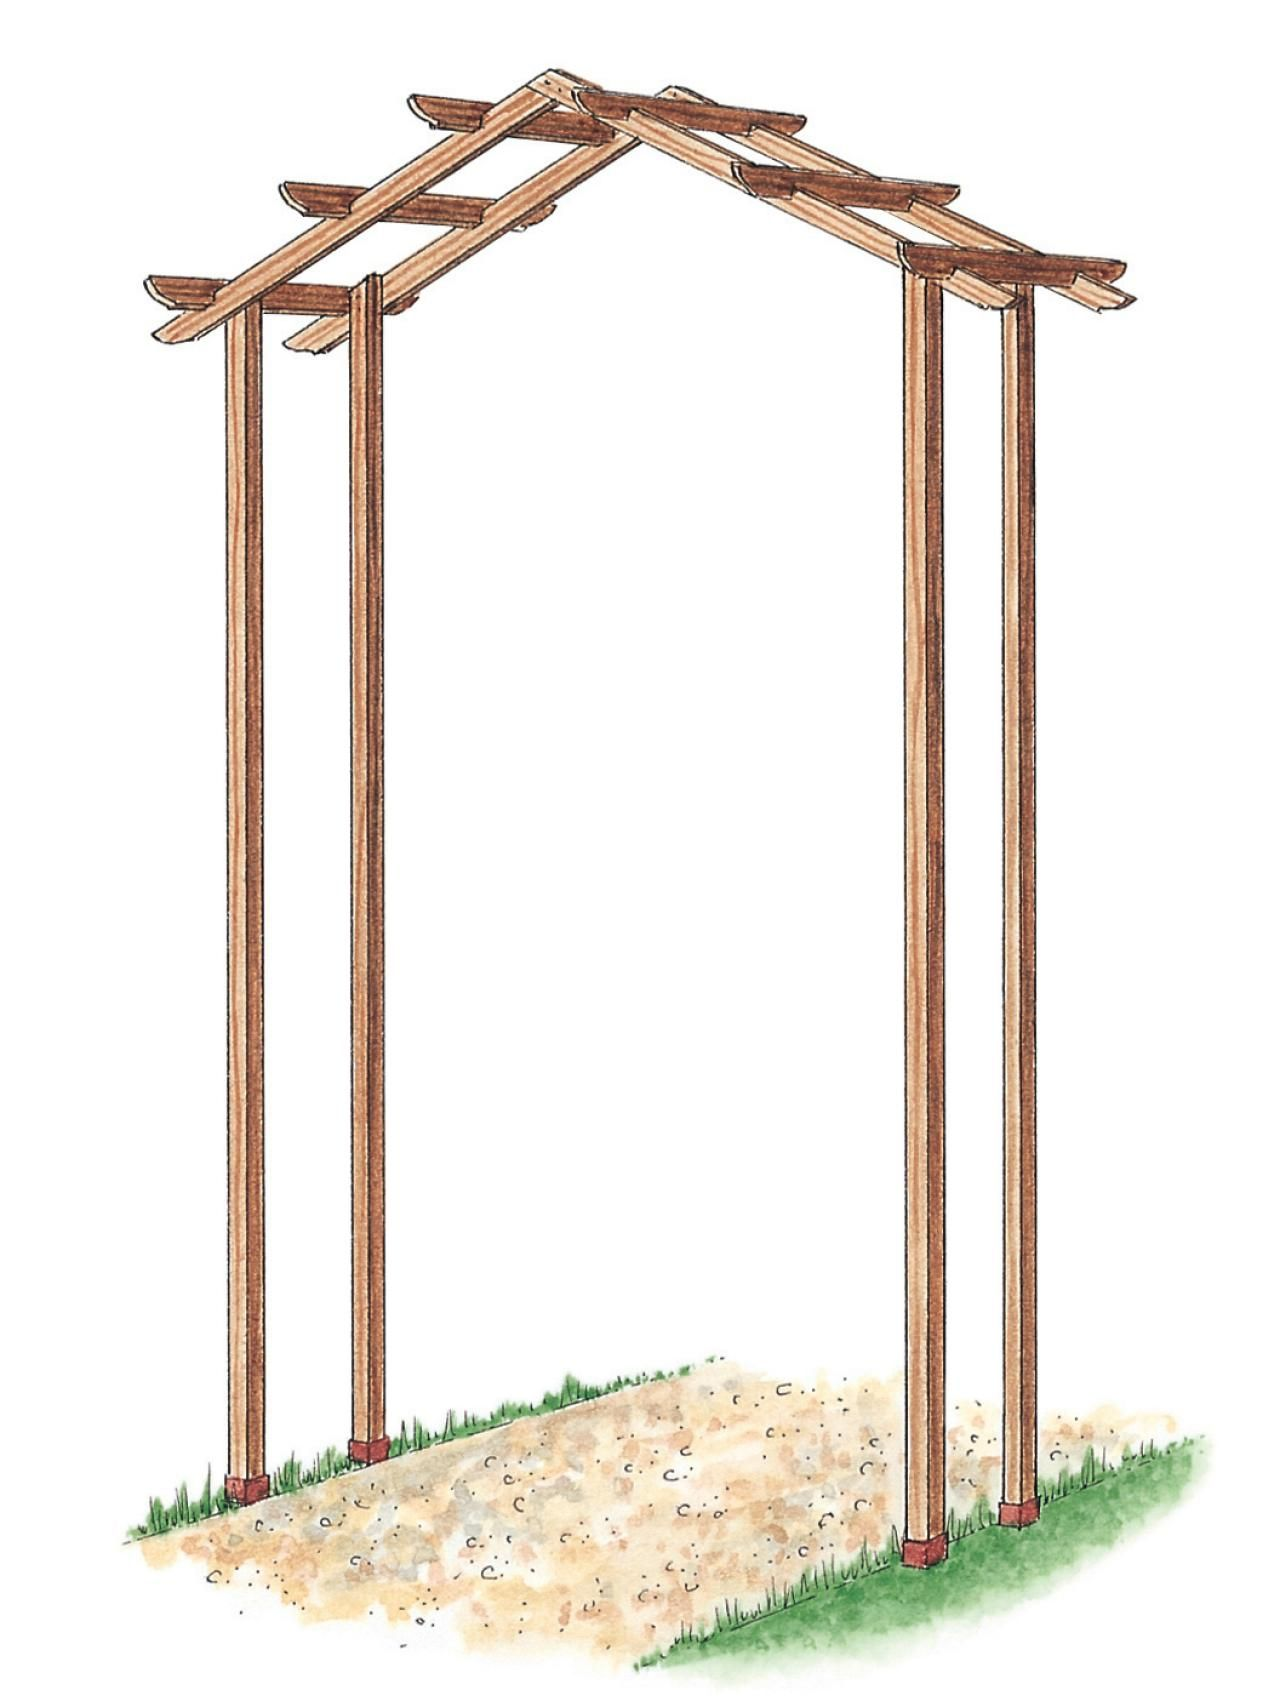 Learn how to build a simple wooden arch kit with this step